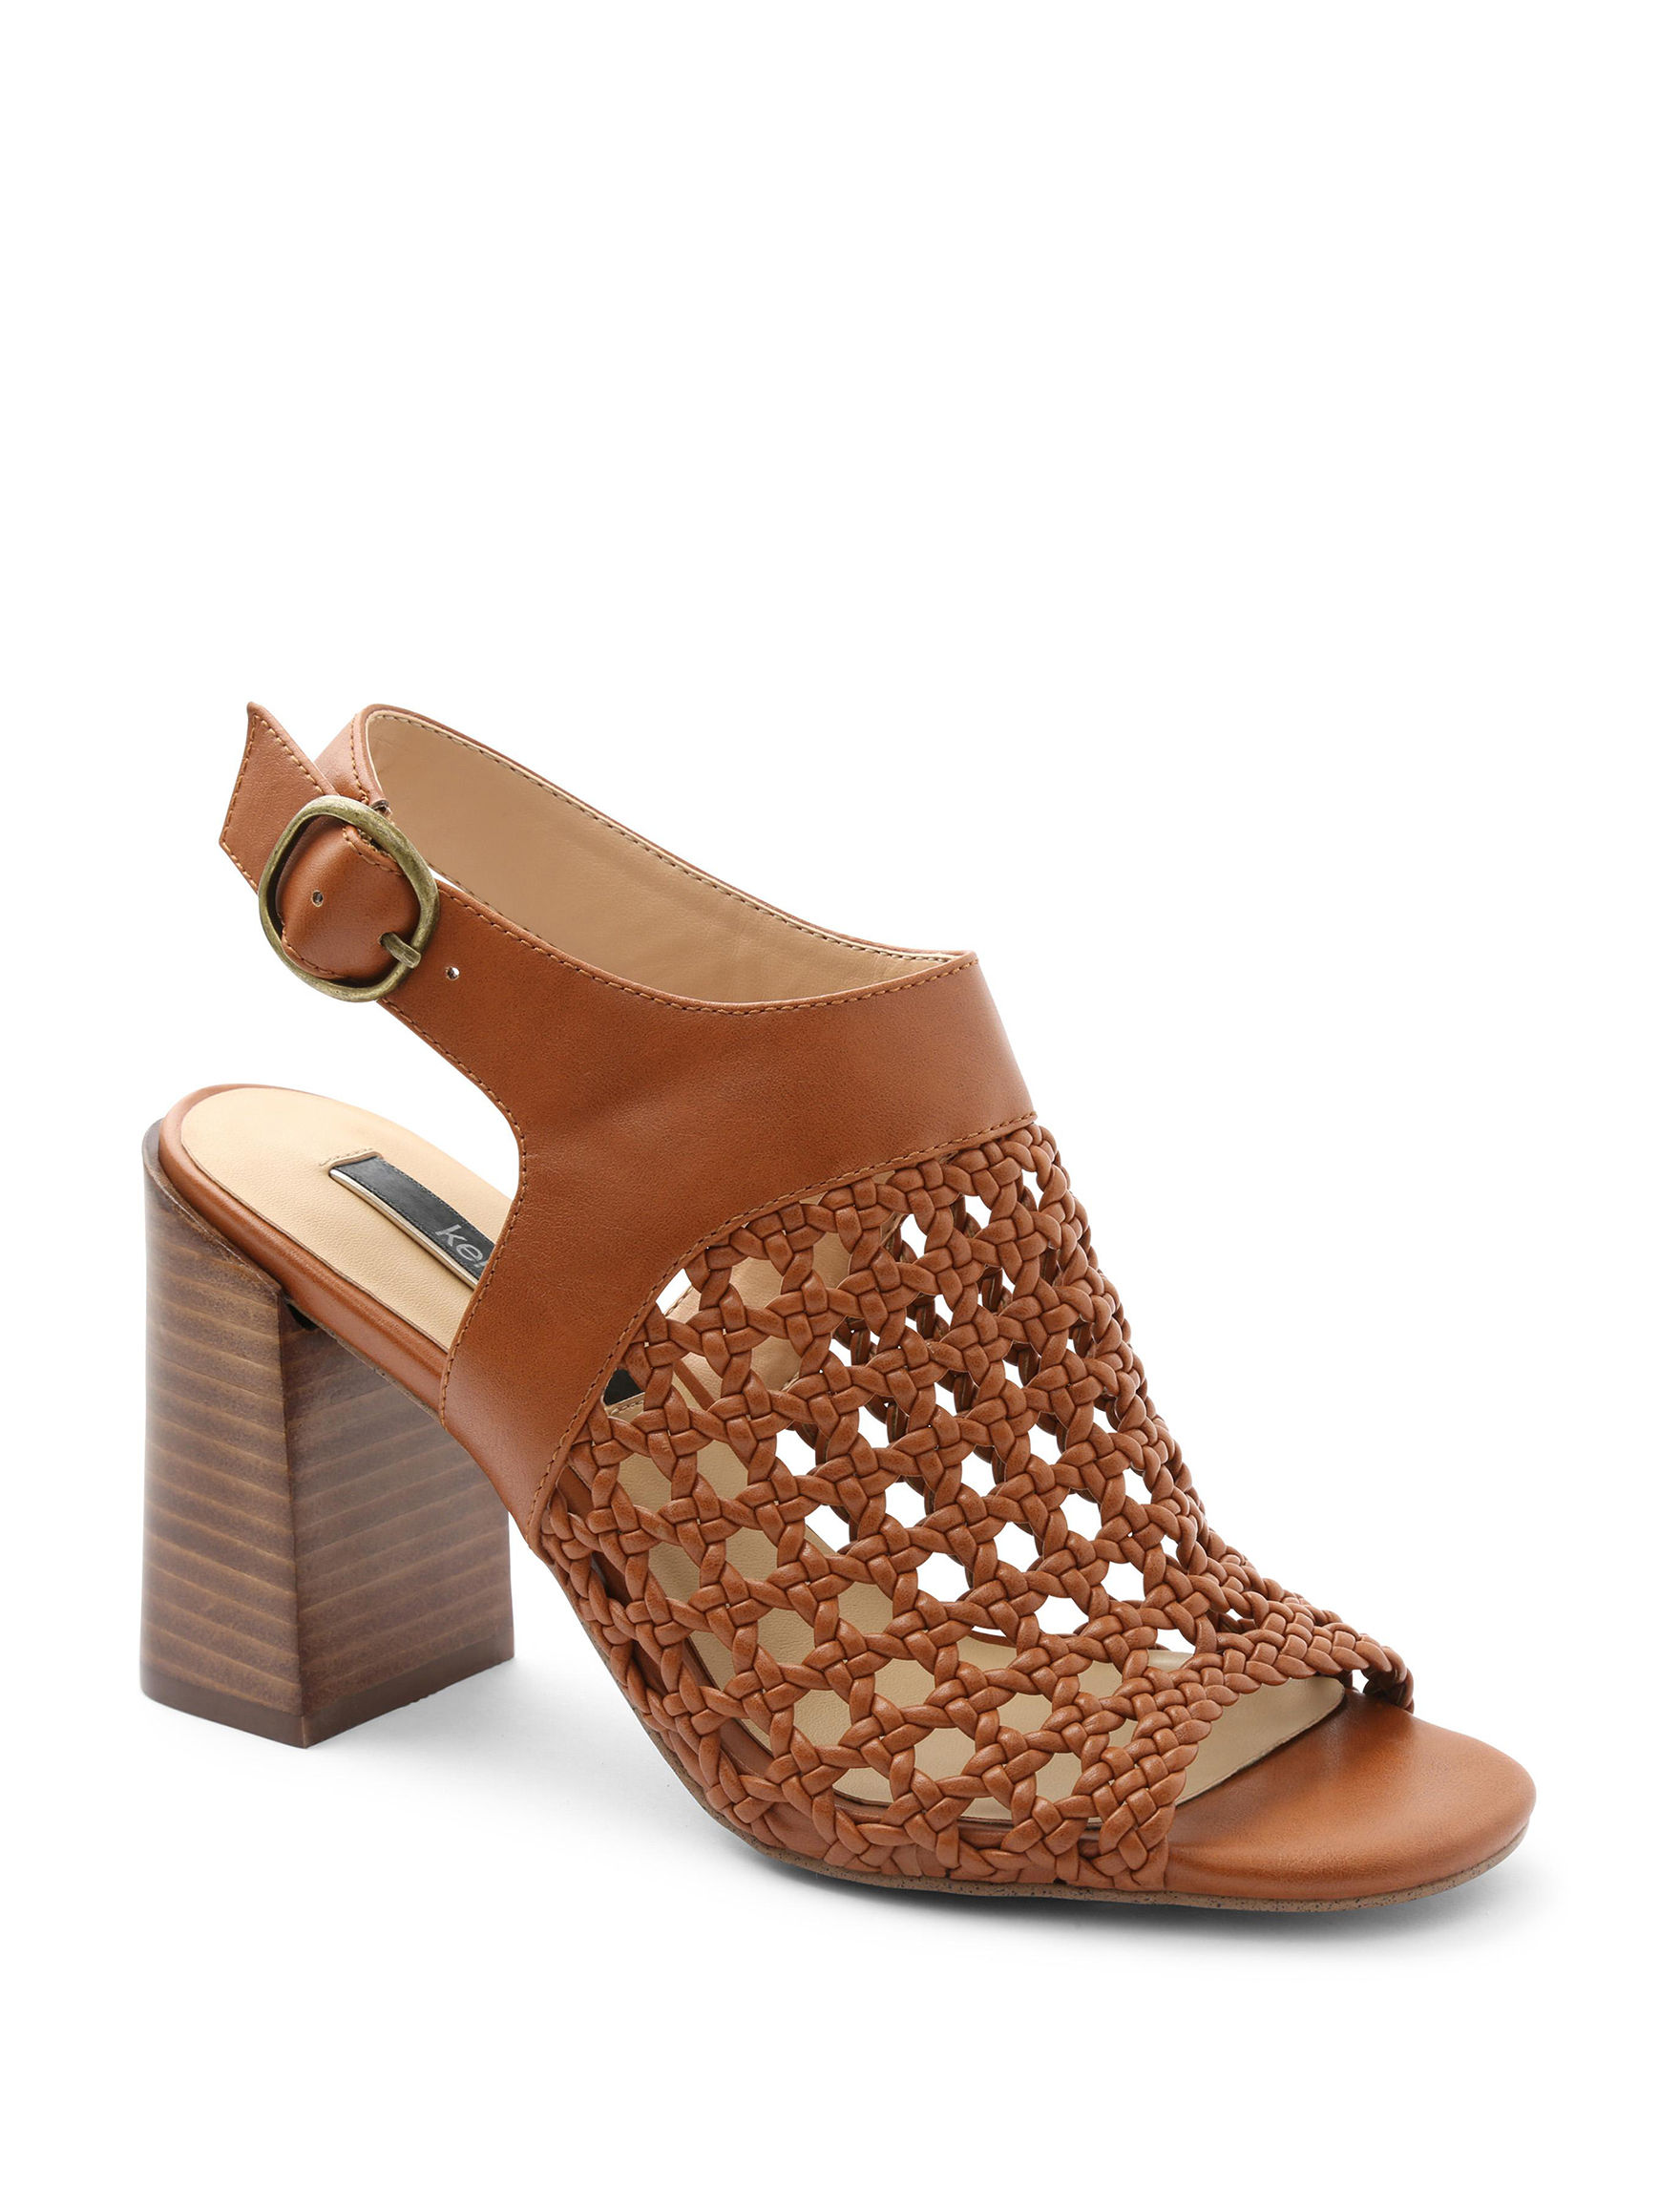 Kensie Tan Heeled Sandals